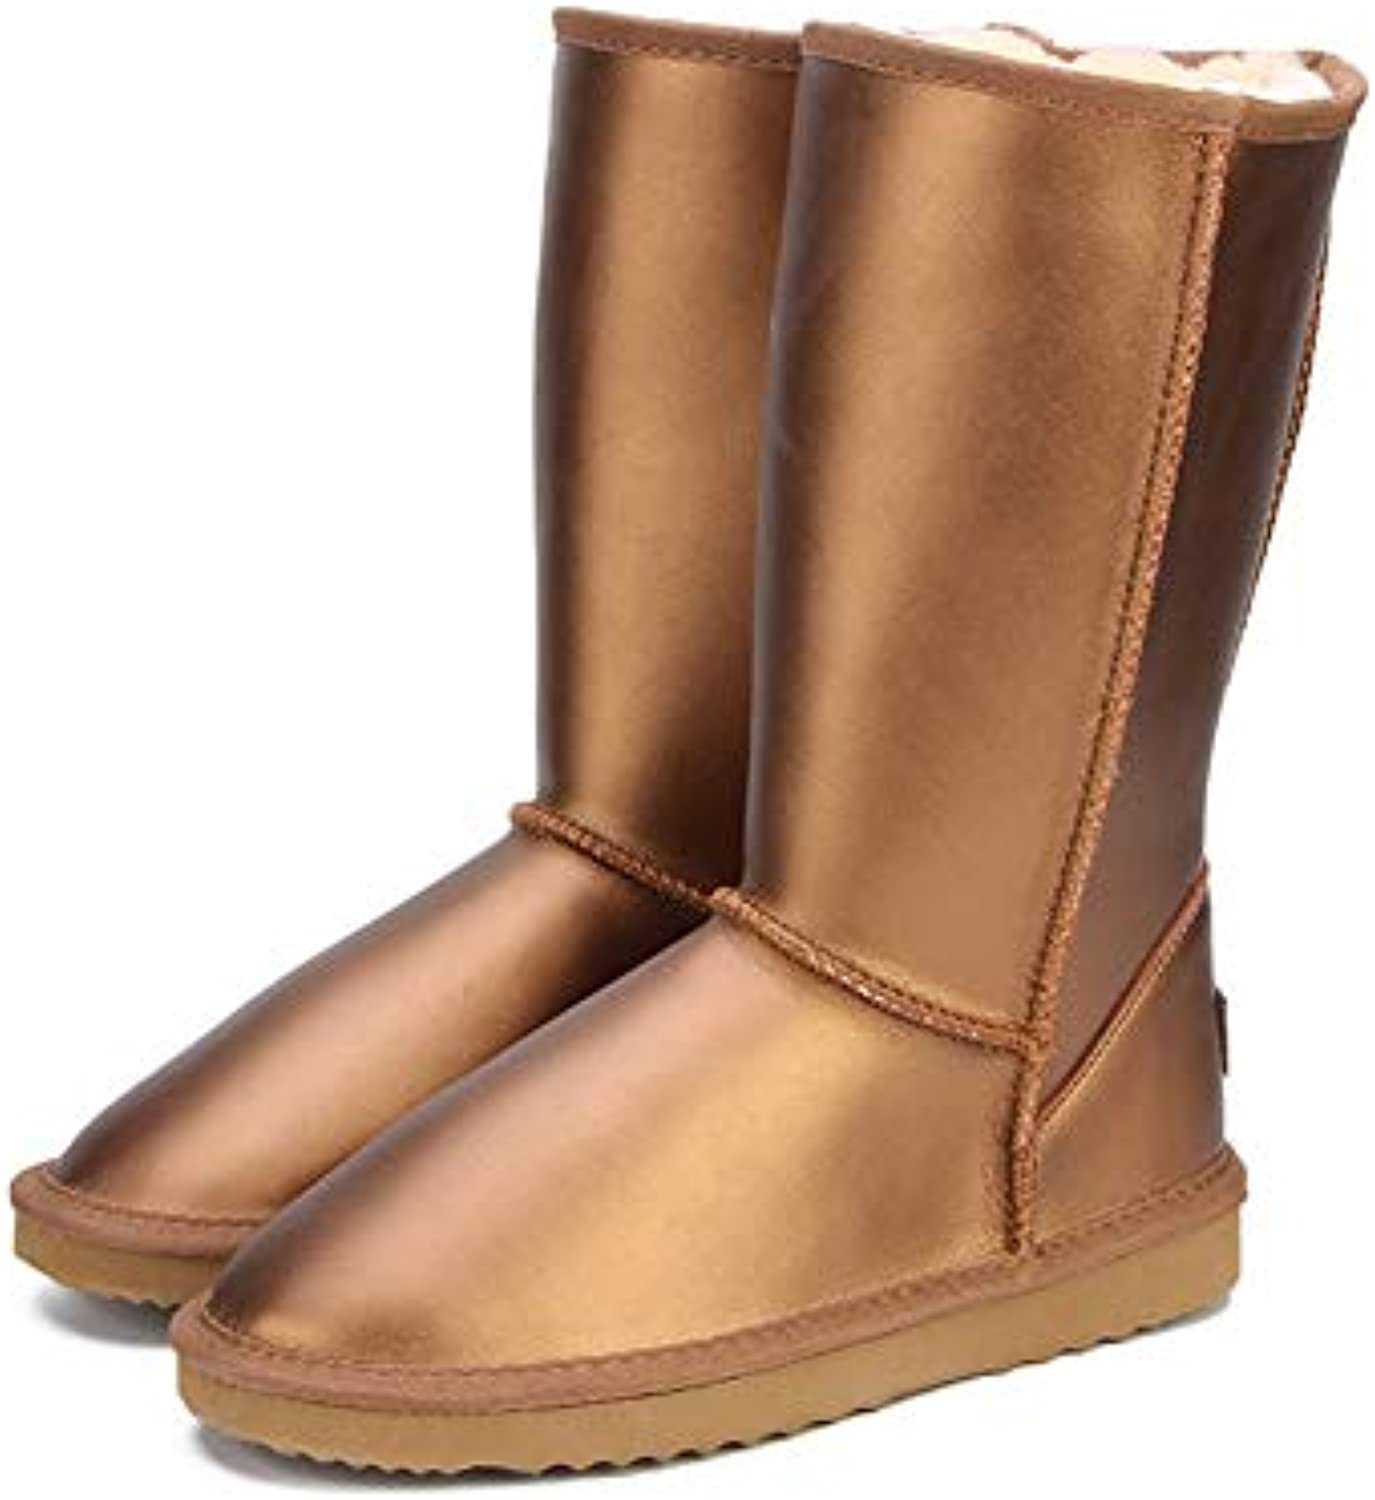 T-JULY Women Winter Genuine Cowhide Leather Waterproof Fashion color Casual Snow Boots